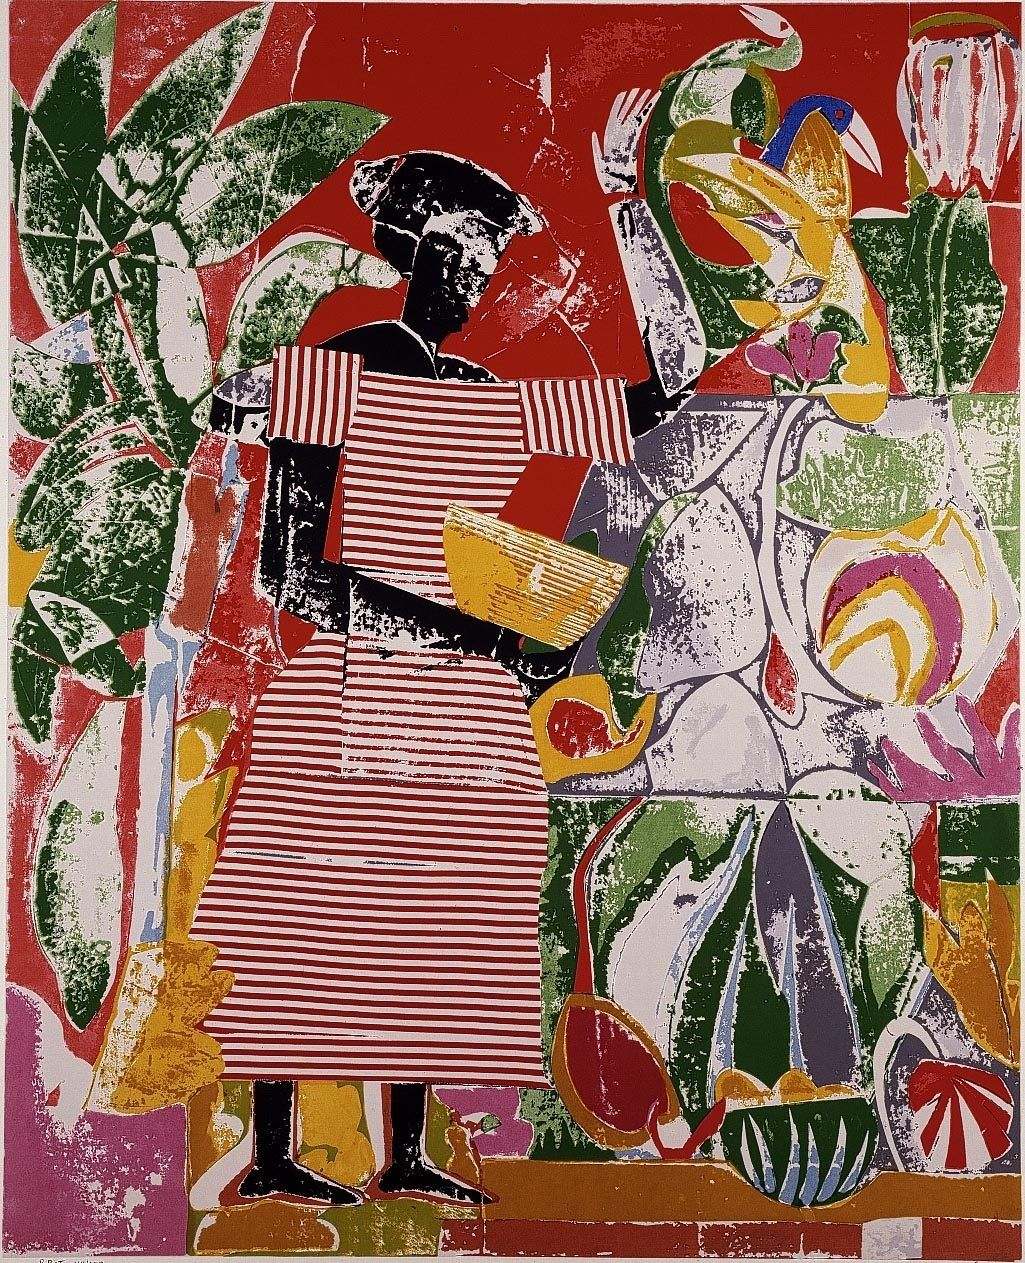 romare bearden Romare howard bearden, caricaturist, painter and songwriter, studied from 1932 to 1937 in new york among others under george grosz at the art students league.